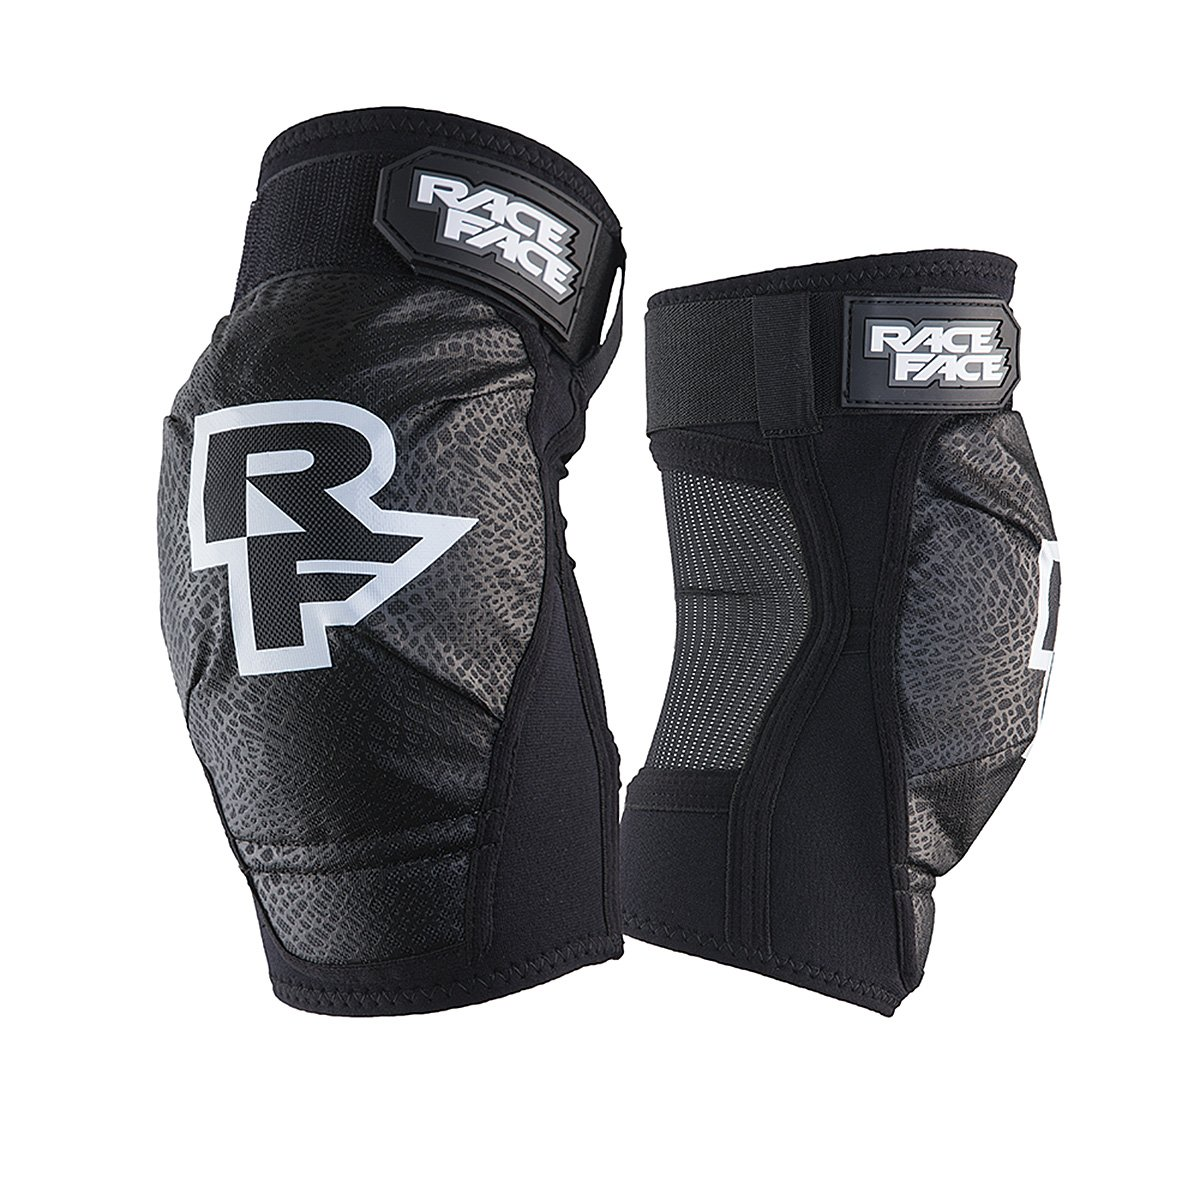 RaceFace Dig Elbow Guard, Black, Large